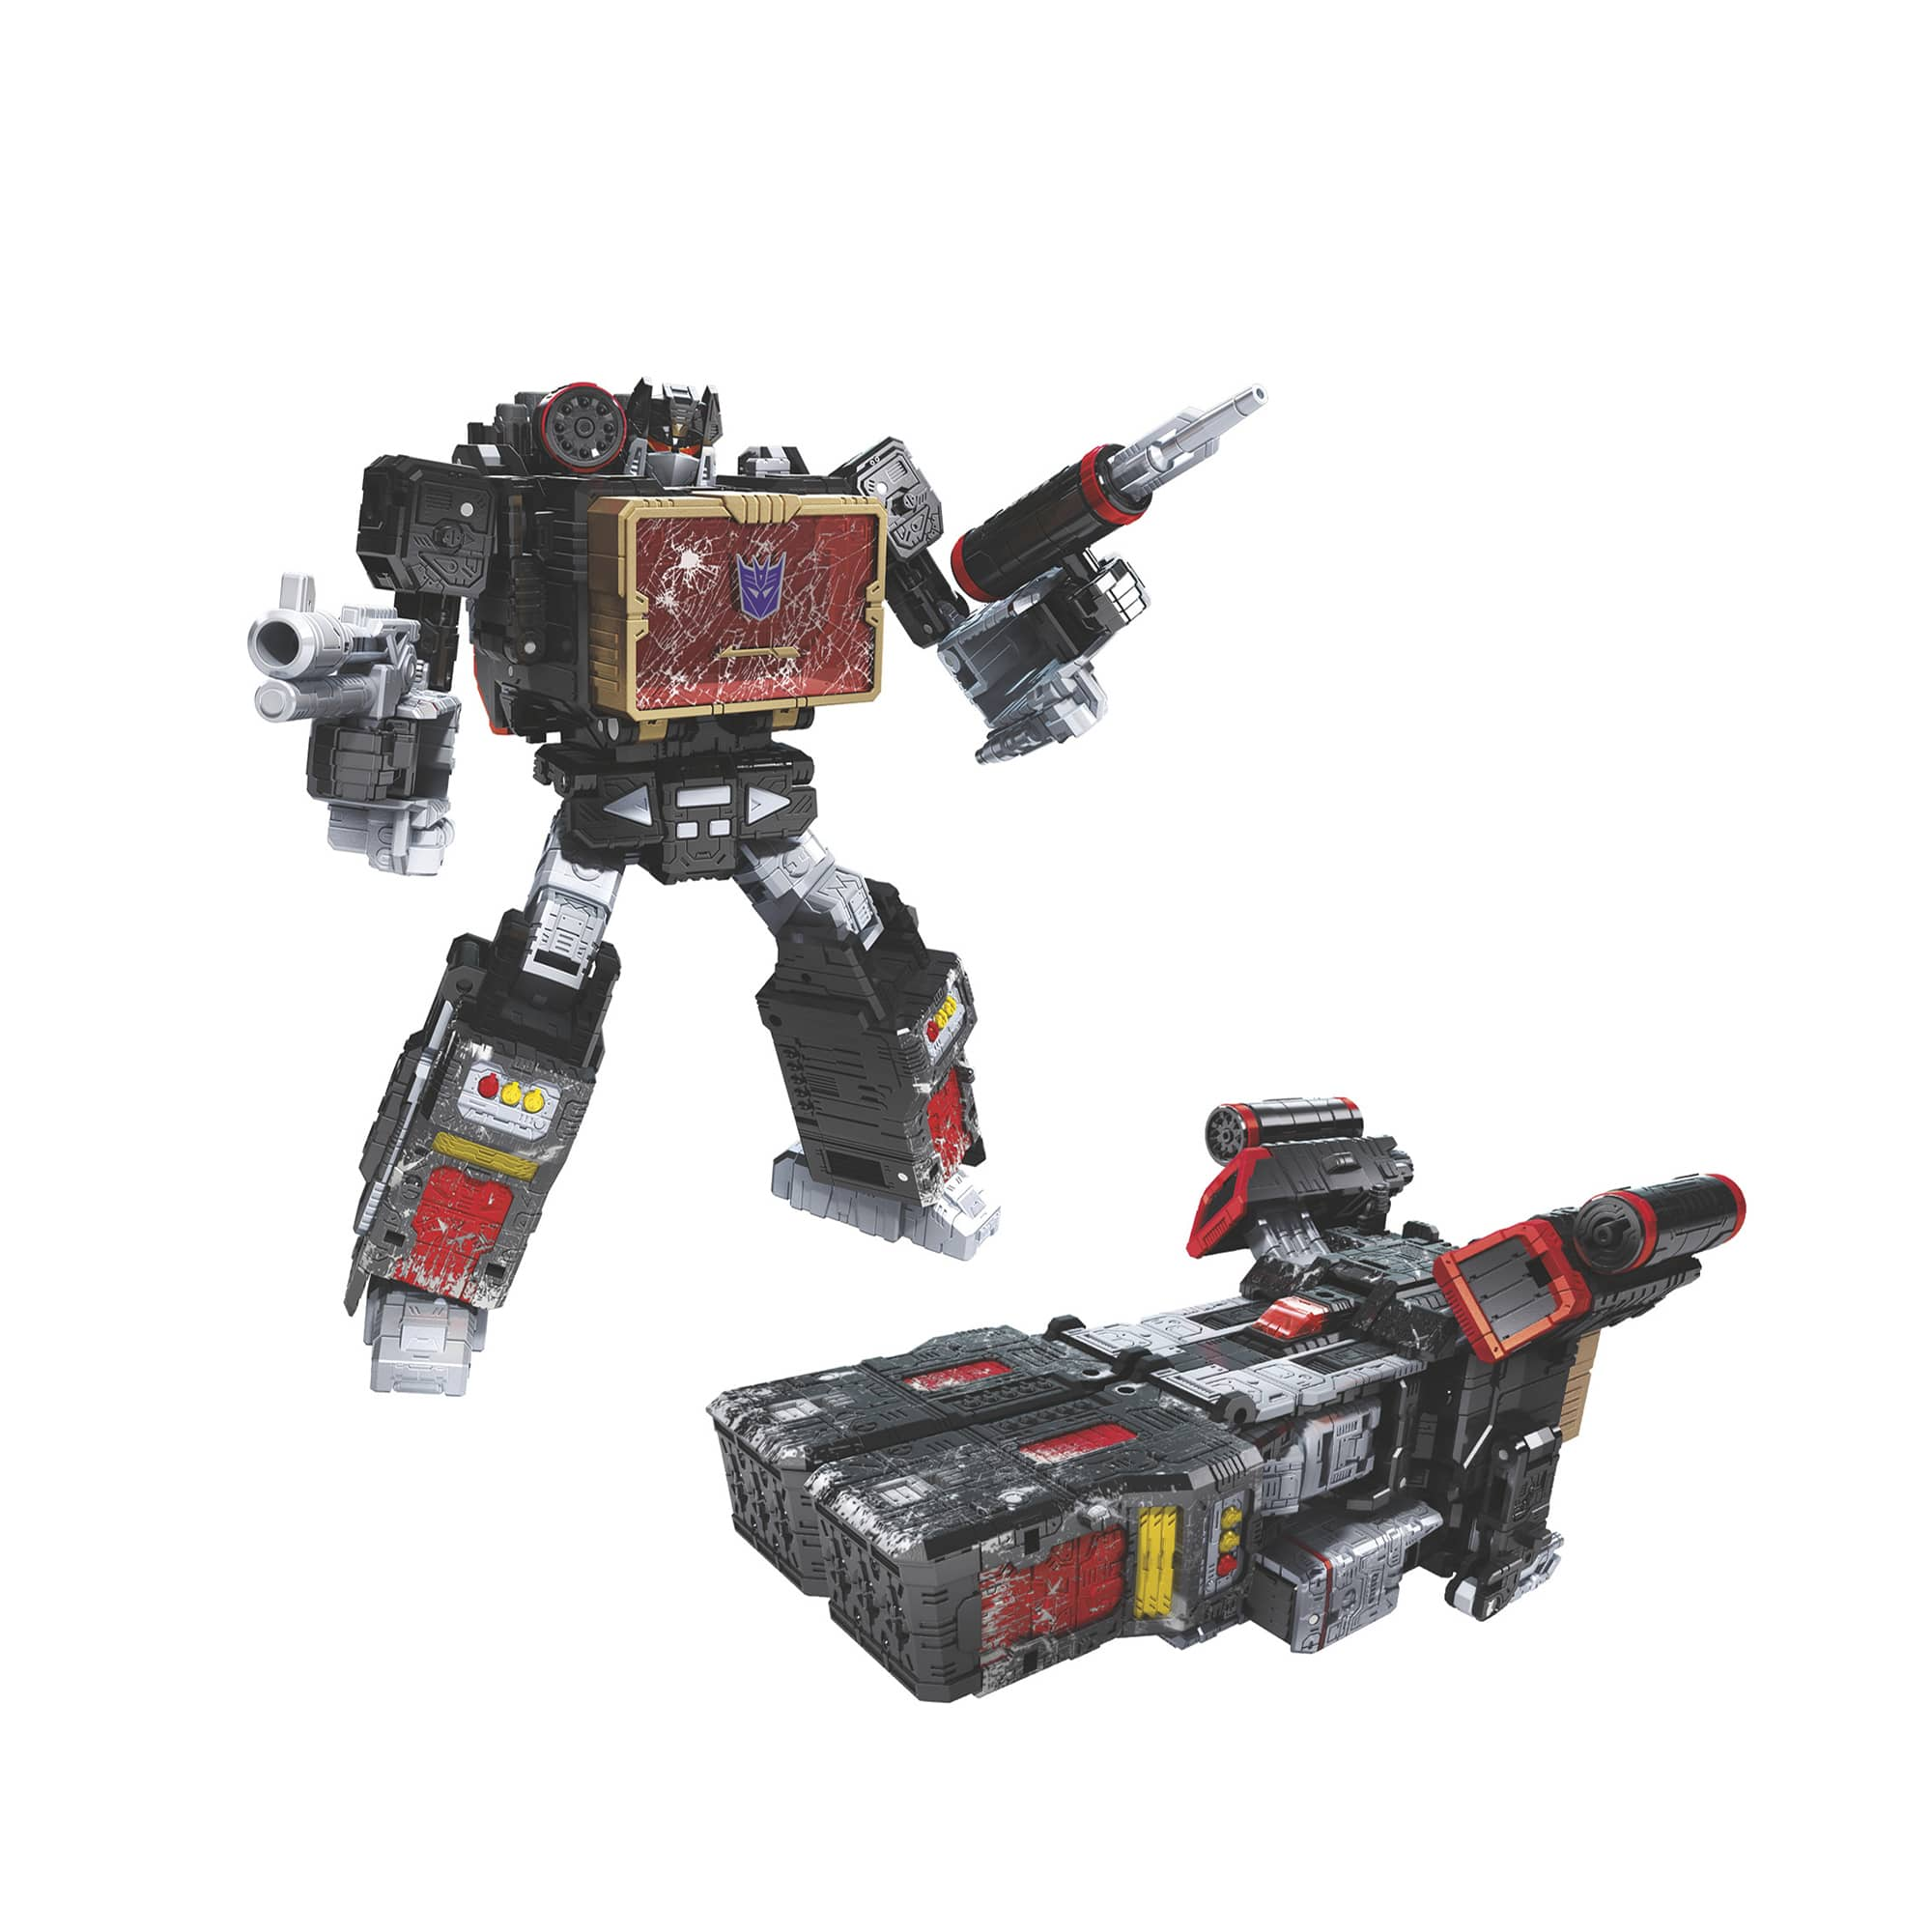 Transformers War for Cyberton: 35th Anniversary Toys: Megatron or Soundblaster